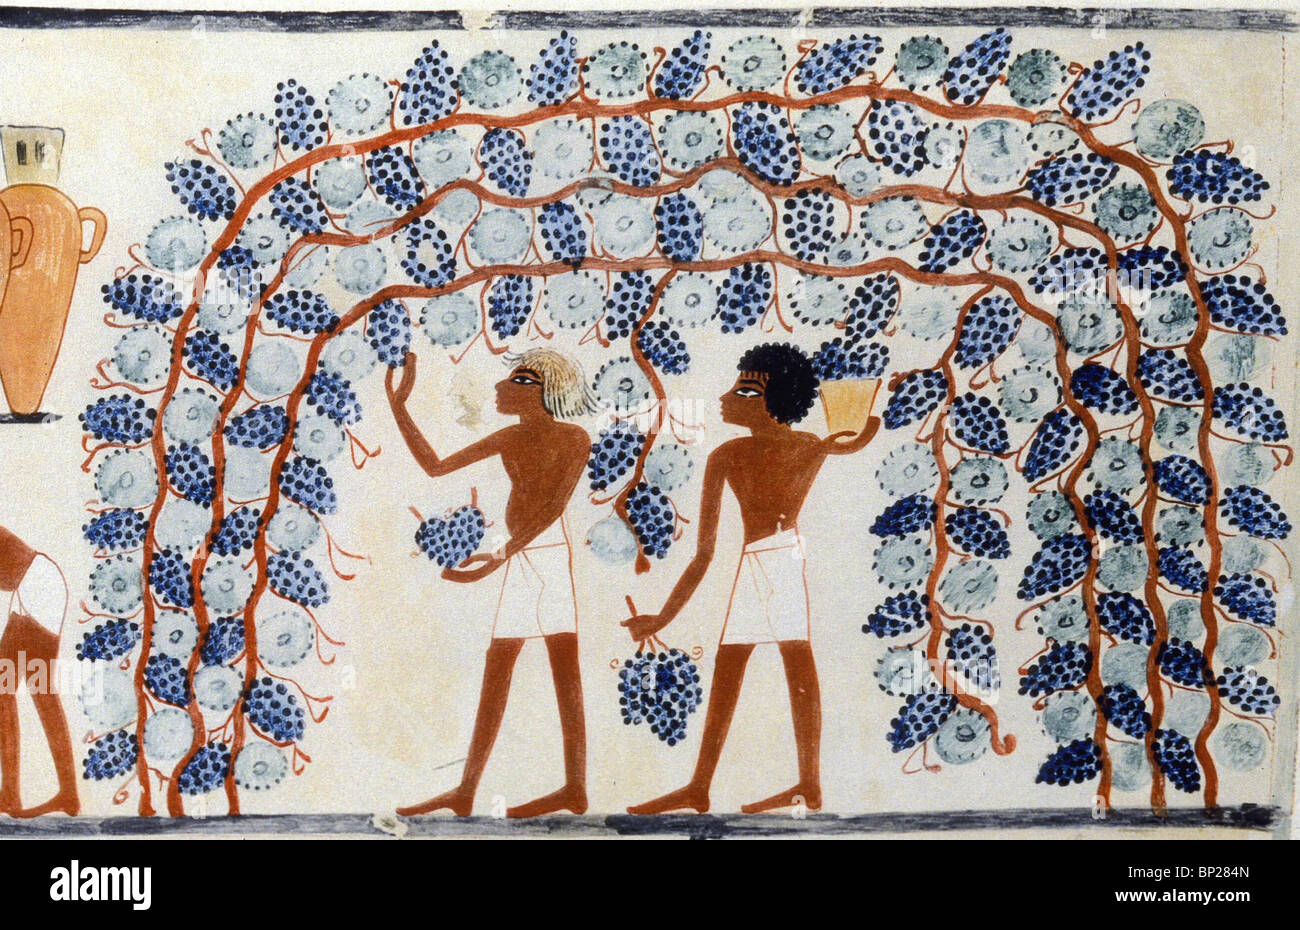 1830. GATHERING GRAPES, THEBES, TUTHMOSIS IV. 1420 - 1411 - Stock Image